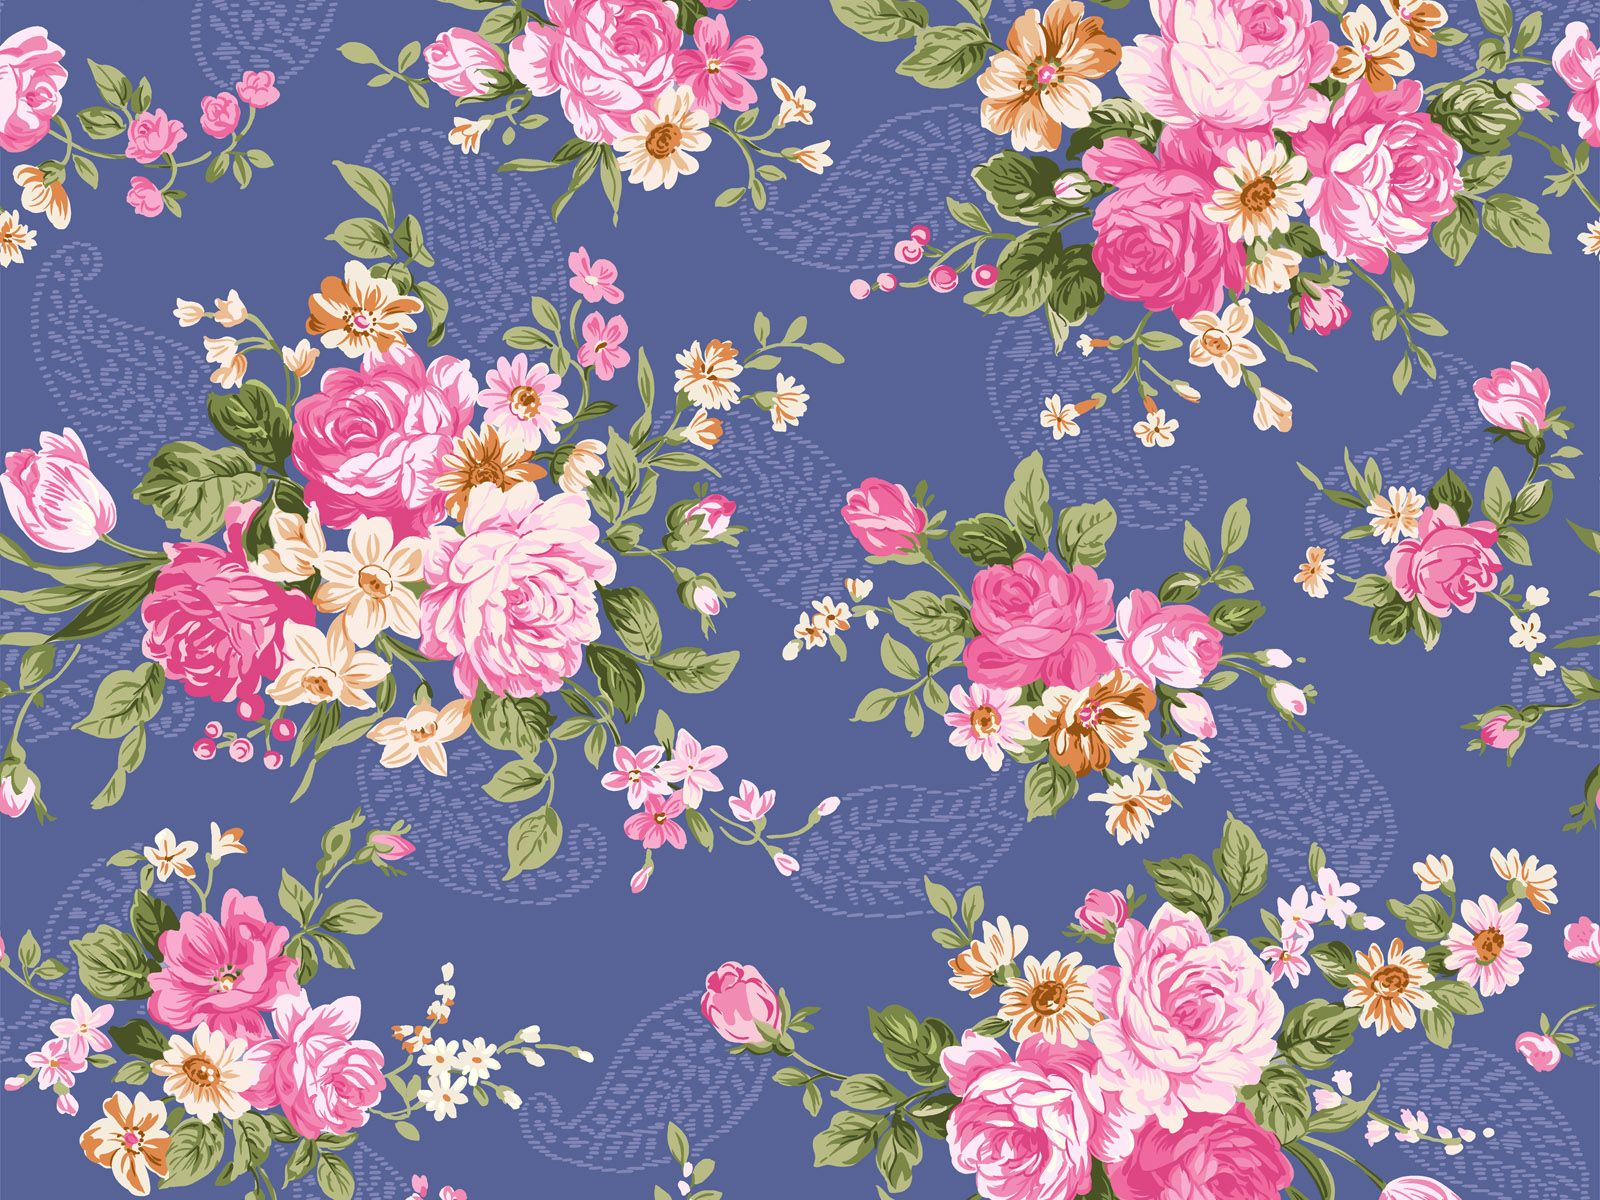 Background wallpaper pattern pattern 204 - Background ... Flower Background Pattern Tumblr